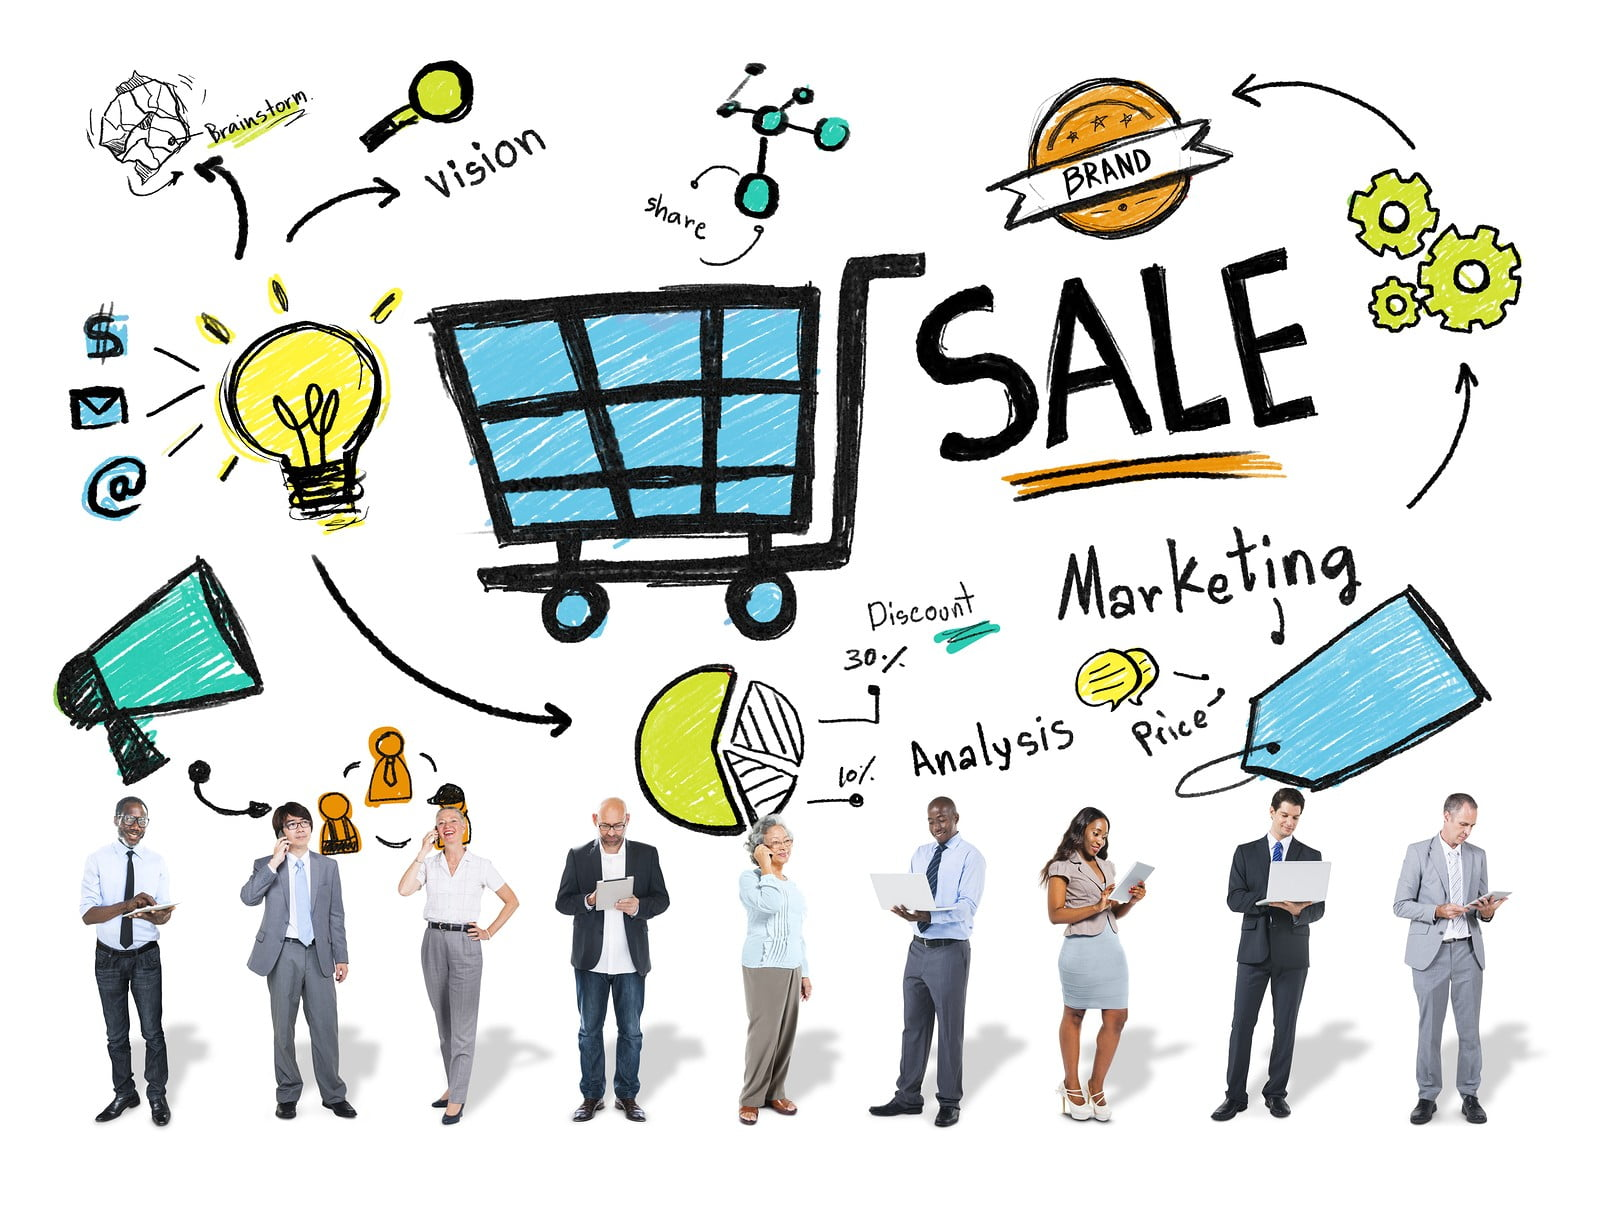 Six Vital Tools Your Sales Team Needs to Make More Sales